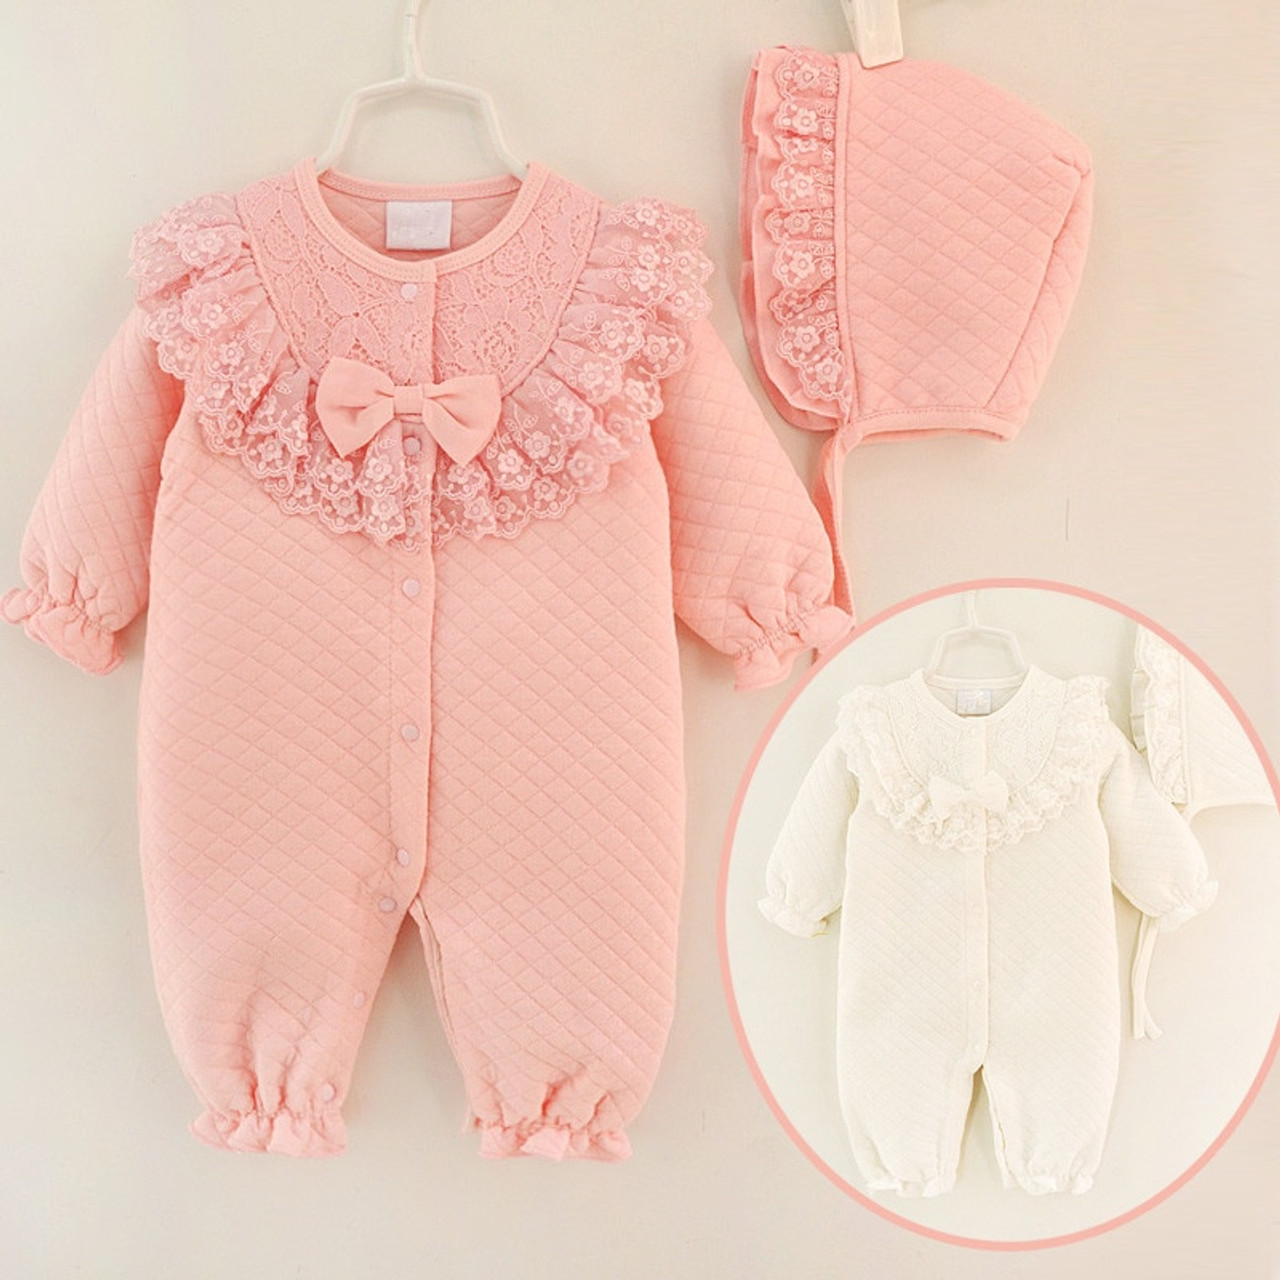 a75080846acda Lace Newborn Baby Girl Clothes Cotton Winter Thicken Coveralls Rompers  Princess Bow Girls Clothing Set Jumpsuit ...